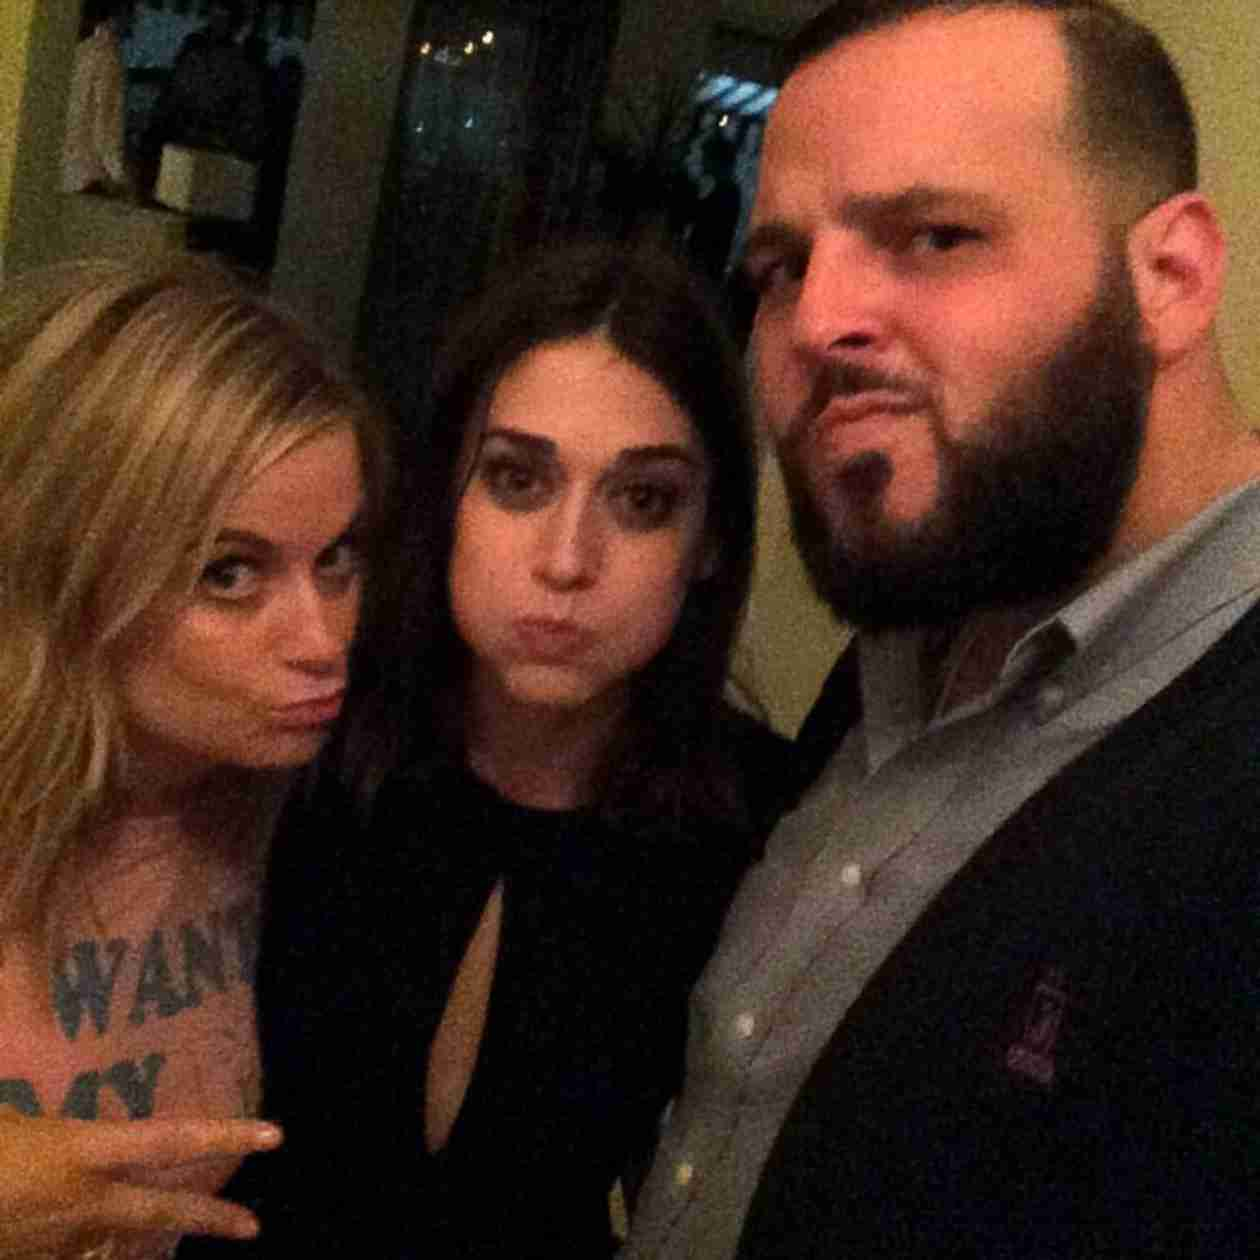 Mean Girls Reunion! Amy Poehler Reunites With Lizzy Caplan and Daniel Franzese (PHOTO)